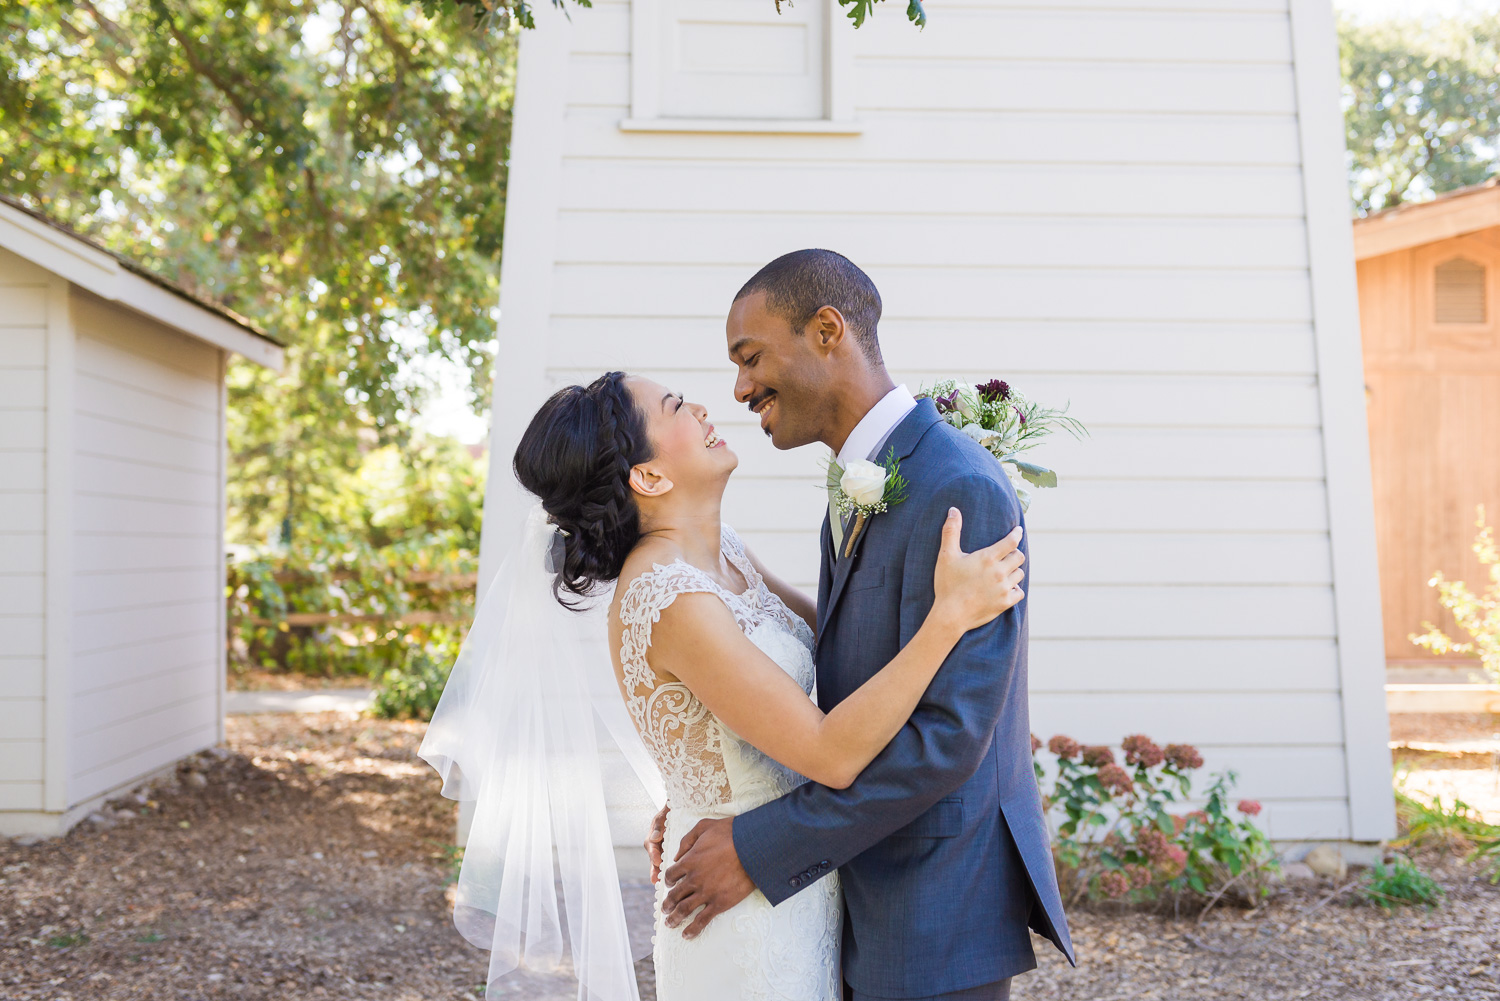 Bride and groom laughing after first look on wedding day in Walnut Creek